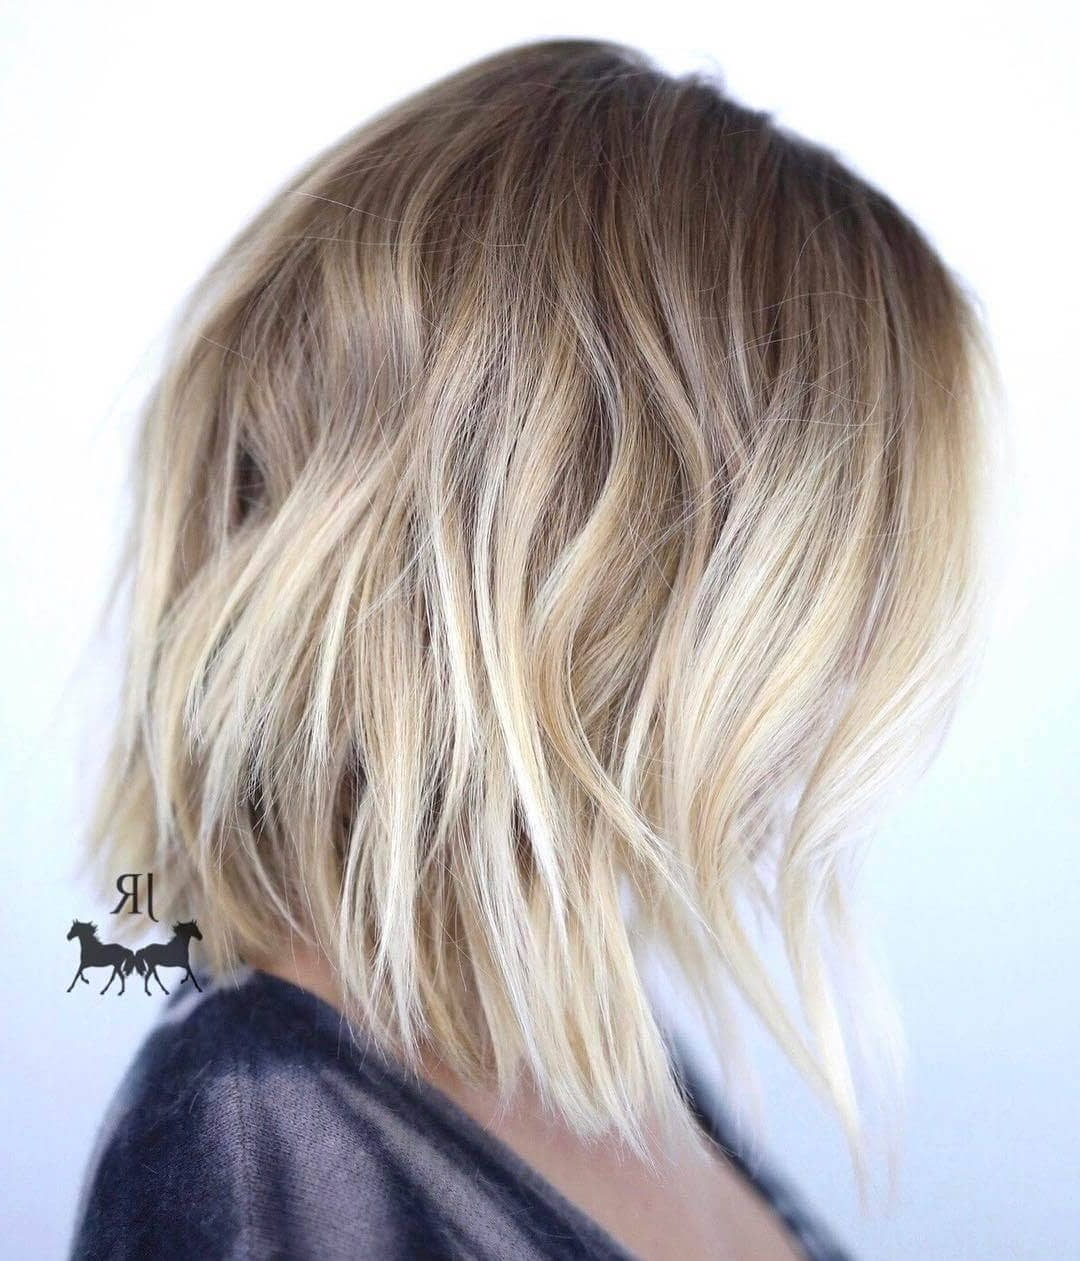 50 Fresh Short Blonde Hair Ideas To Update Your Style In 2018 Regarding Blonde Balayage Bob Hairstyles With Angled Layers (View 8 of 20)